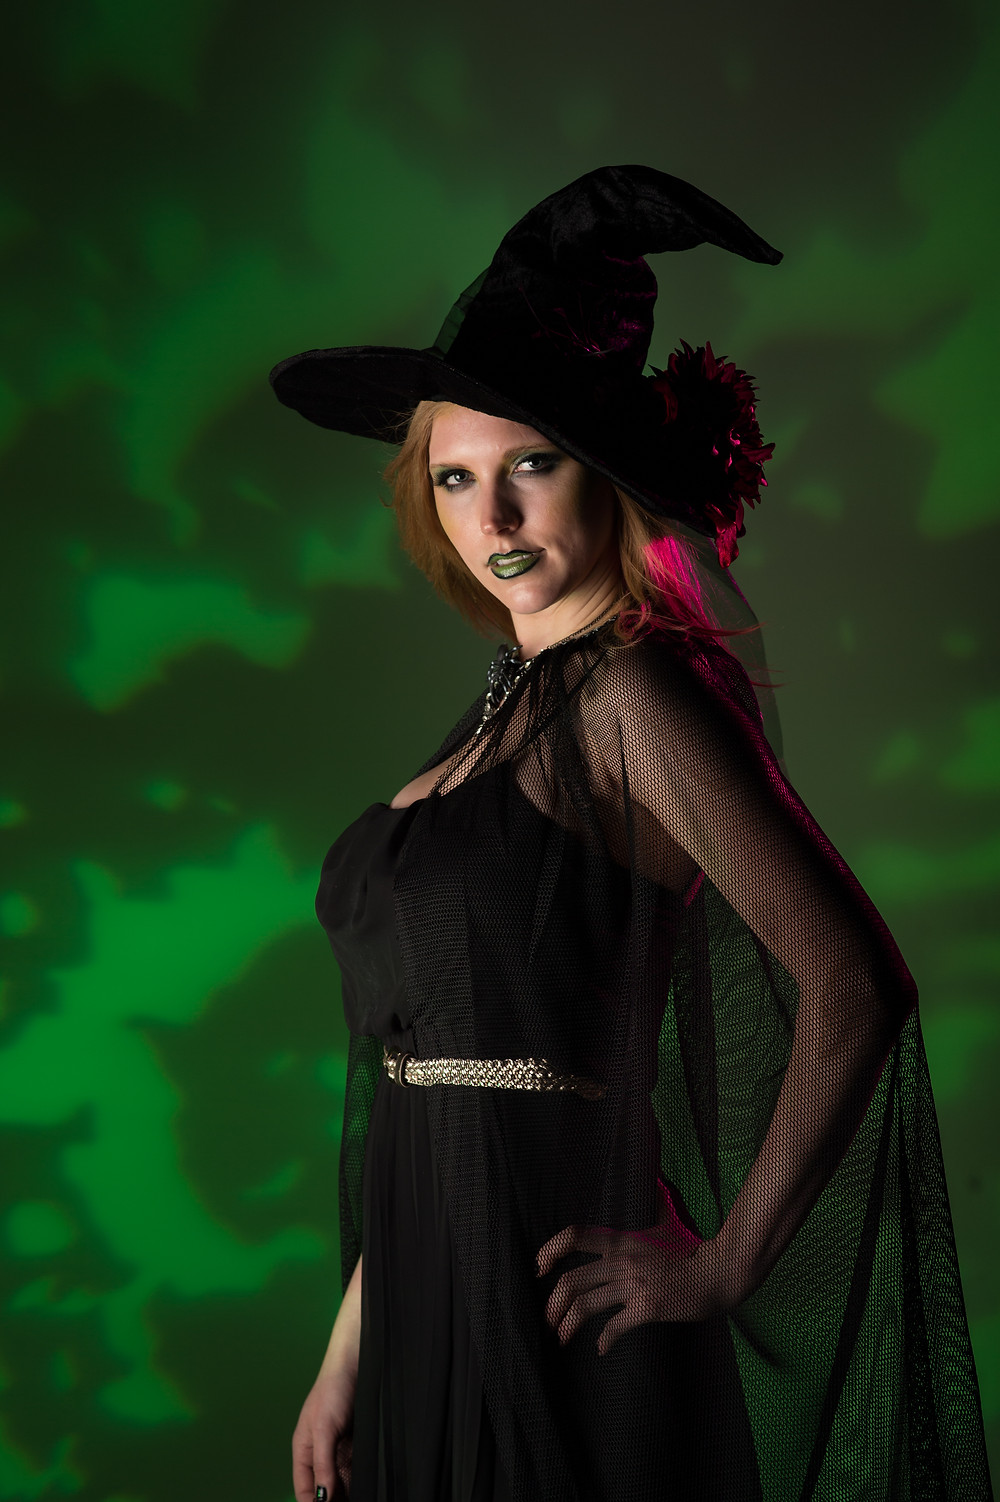 Laura Porter, Glam Witch